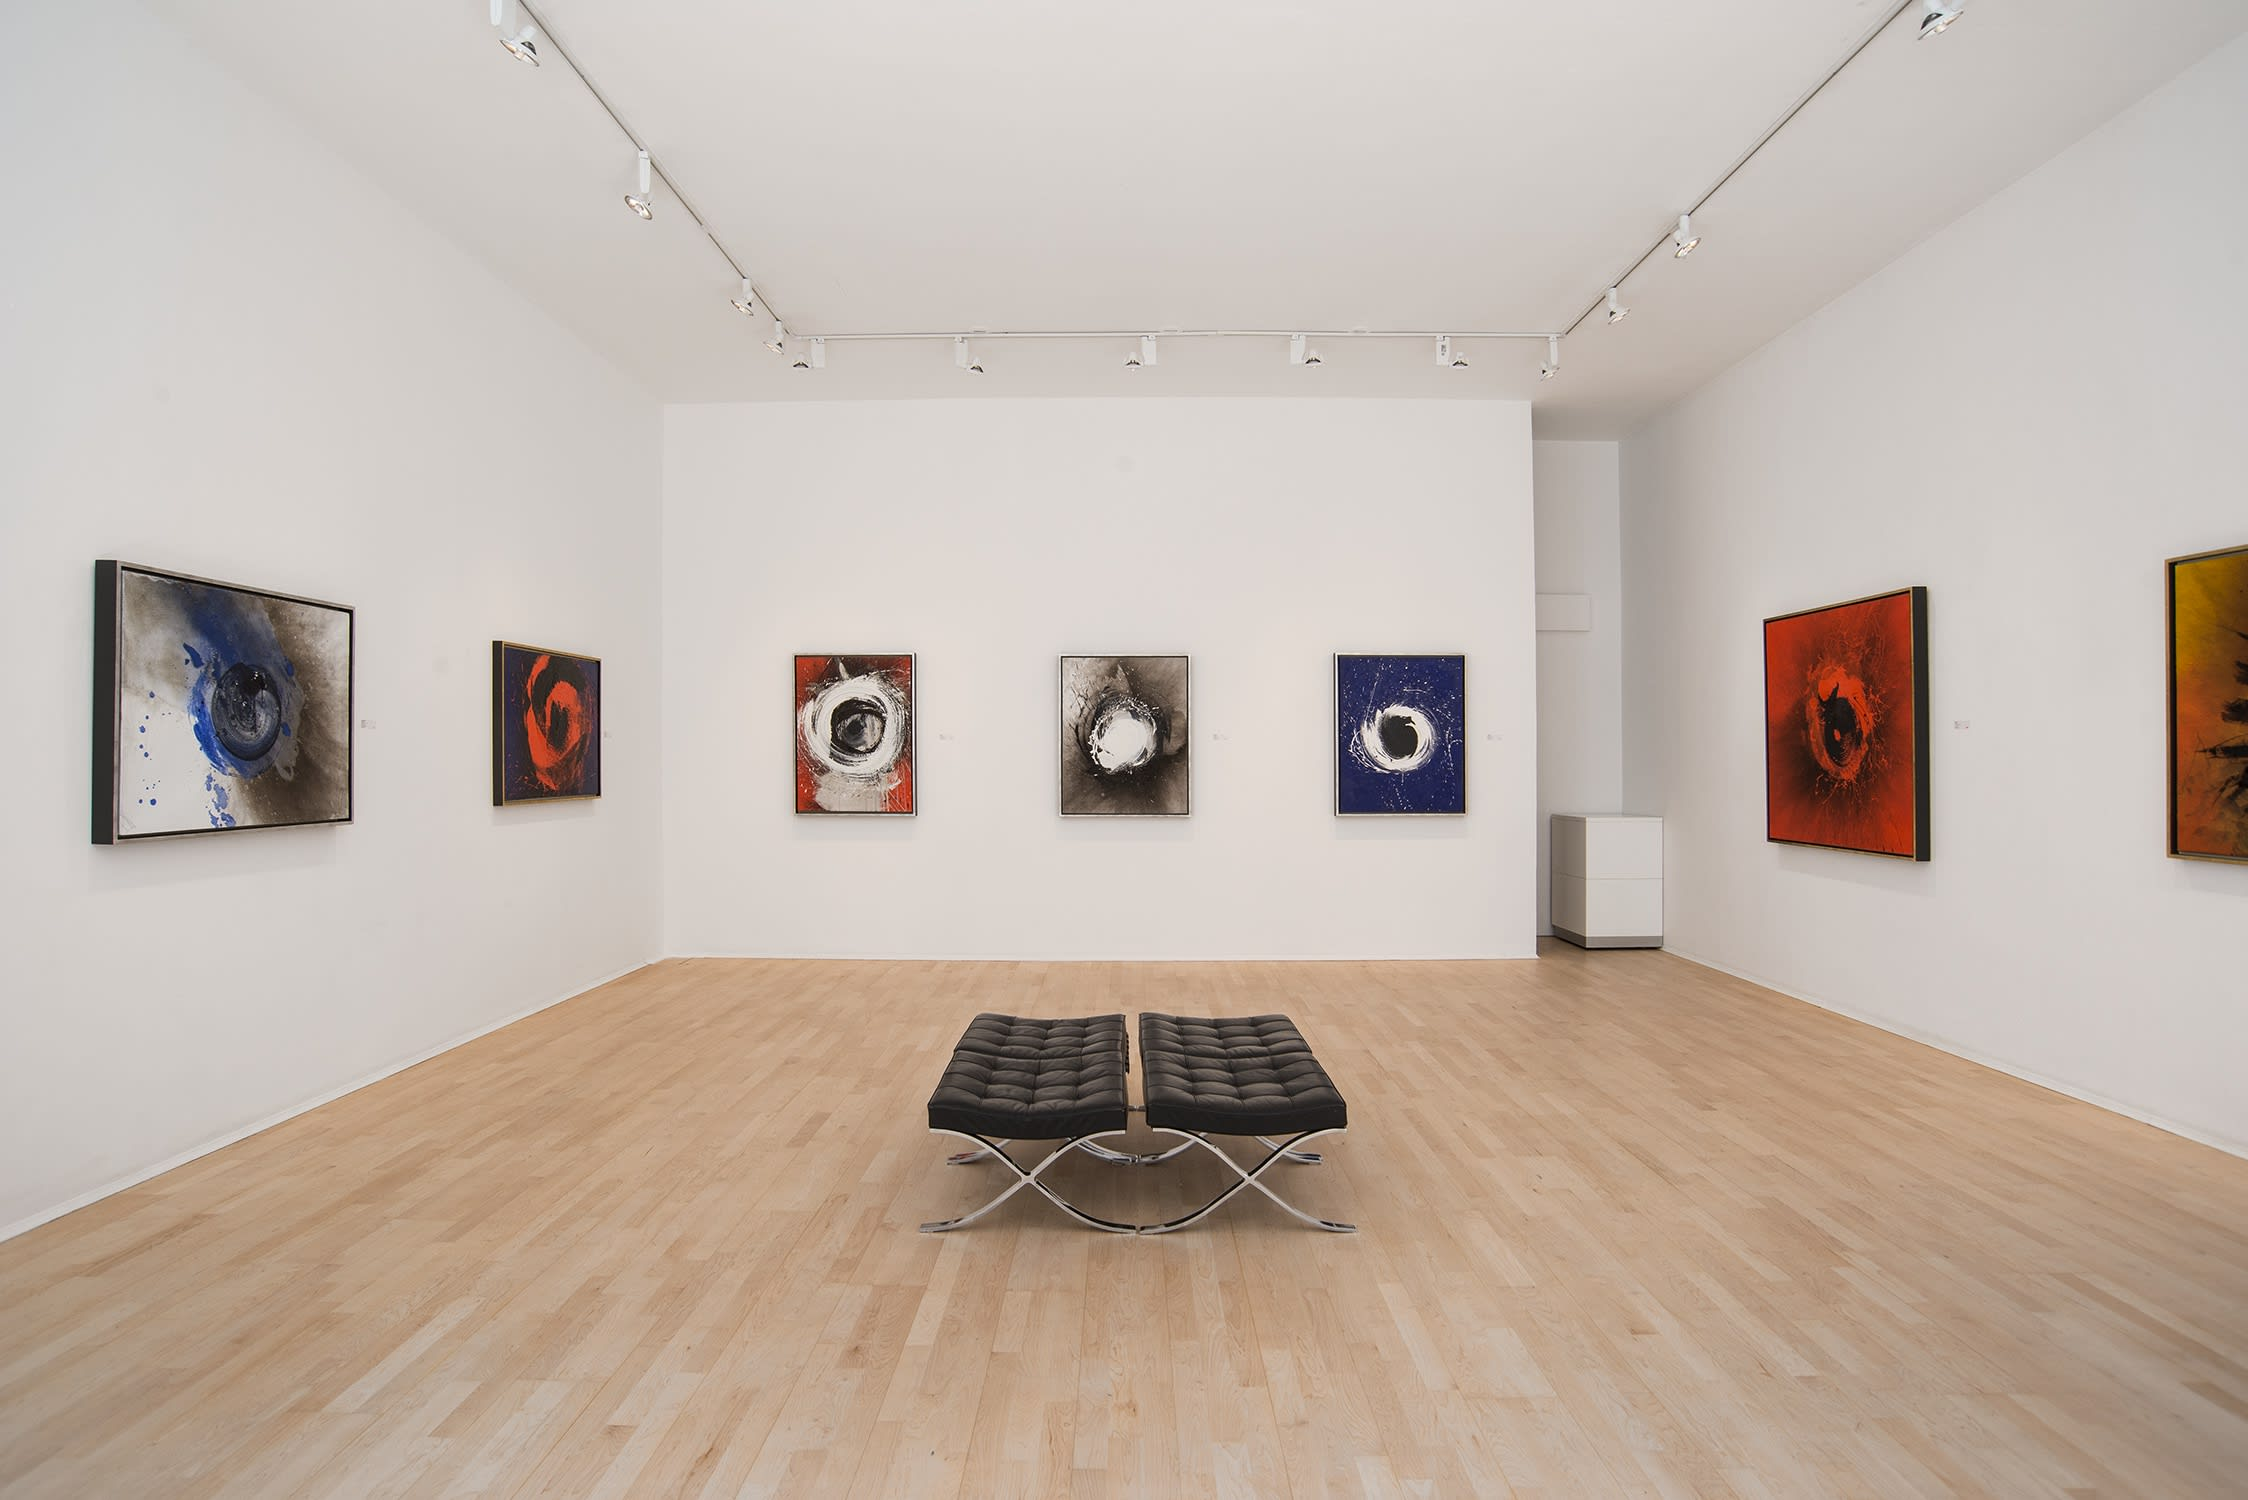 "<span class=""link fancybox-details-link""><a href=""/exhibitions/55/works/image_standalone54/"">View Detail Page</a></span><p>OTTO PIENE 